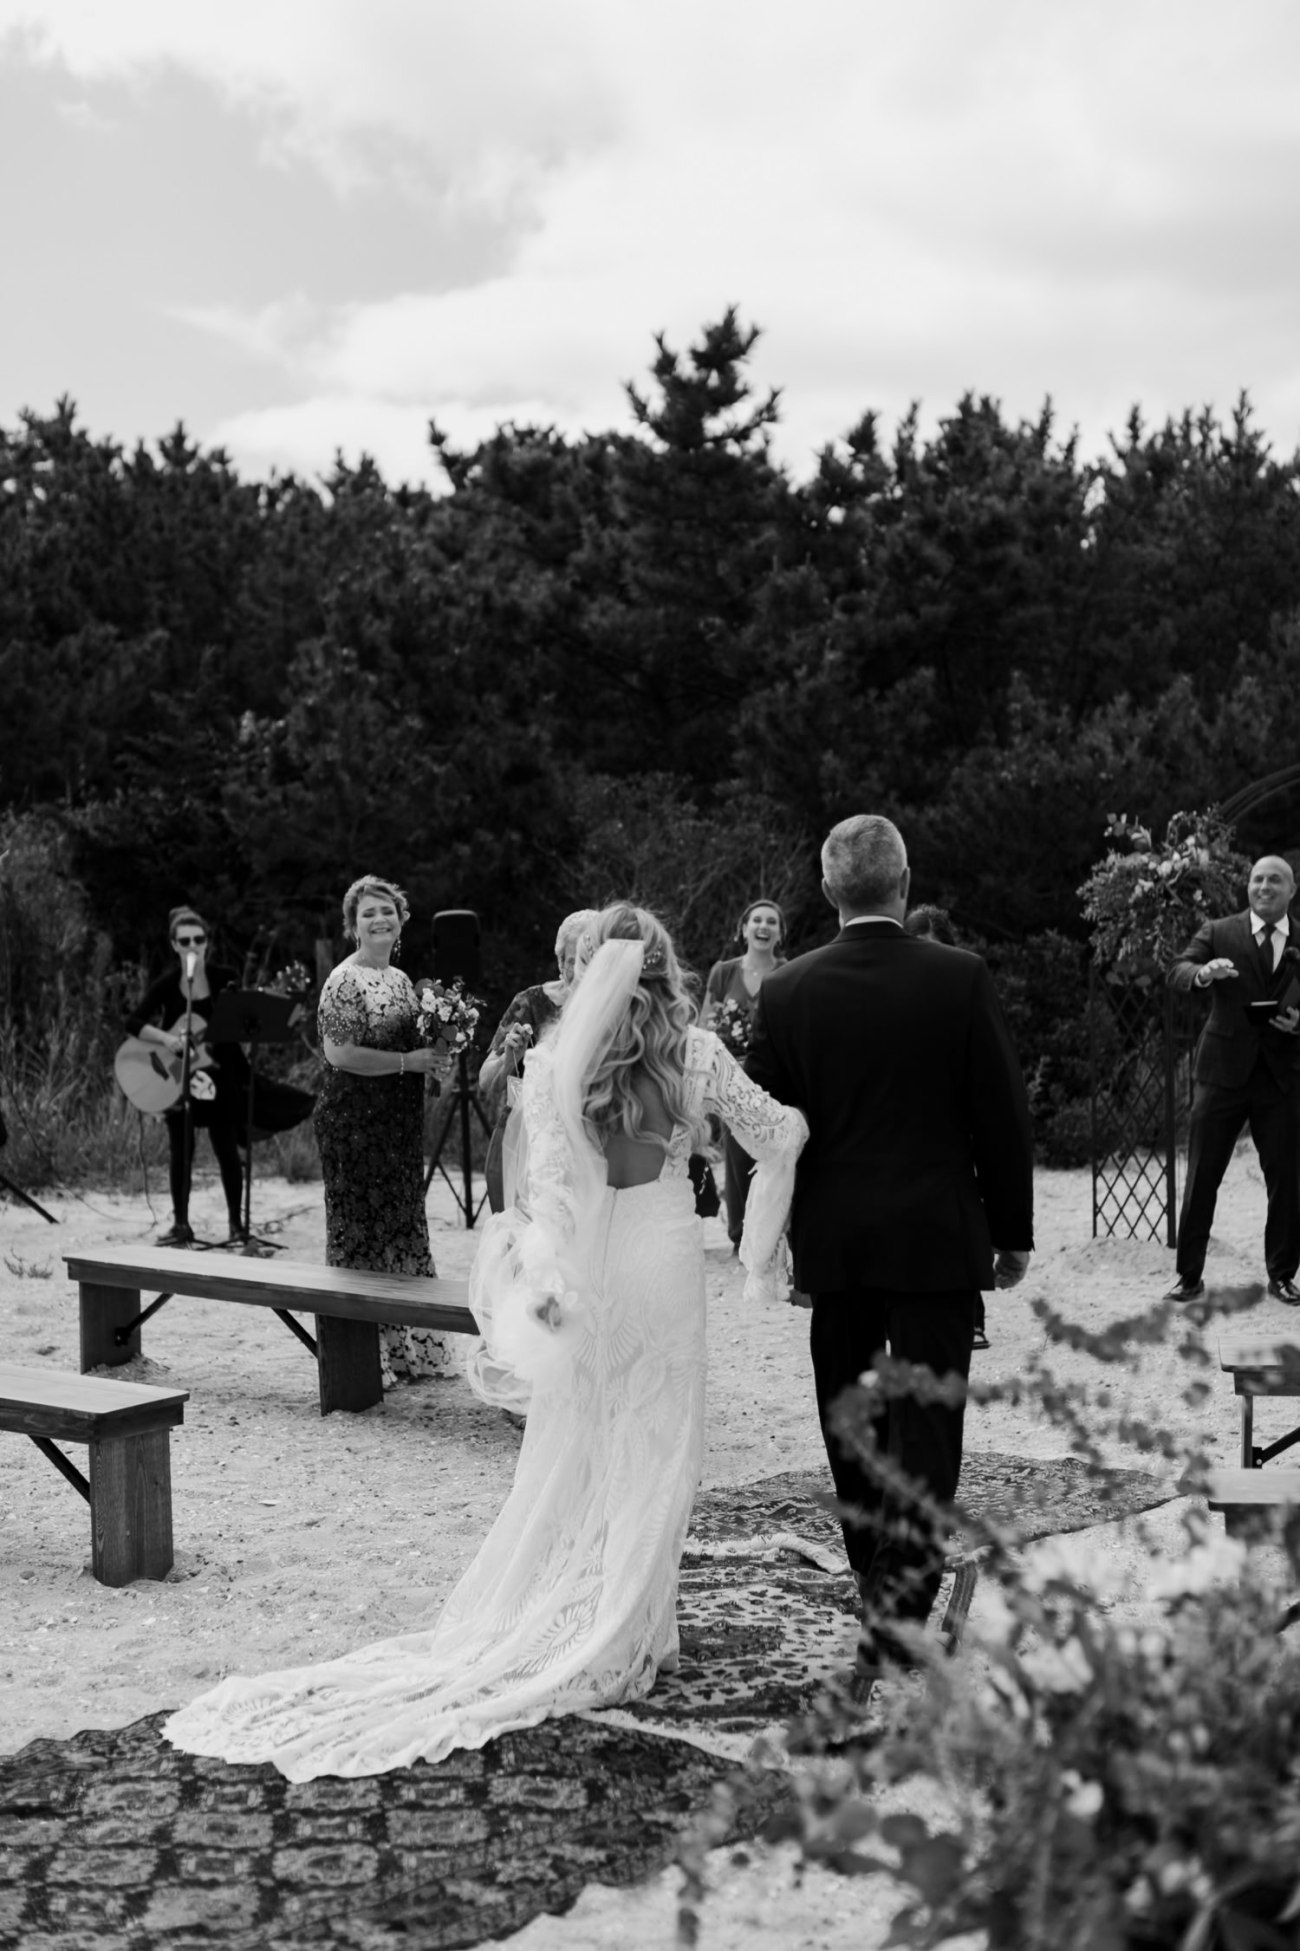 Long Beach Island Wedding Barnegat Lighthouse Wedding Ceremony New Jersey Wedding Anais Possamai Photography Oregon Wedding Photographer 0029